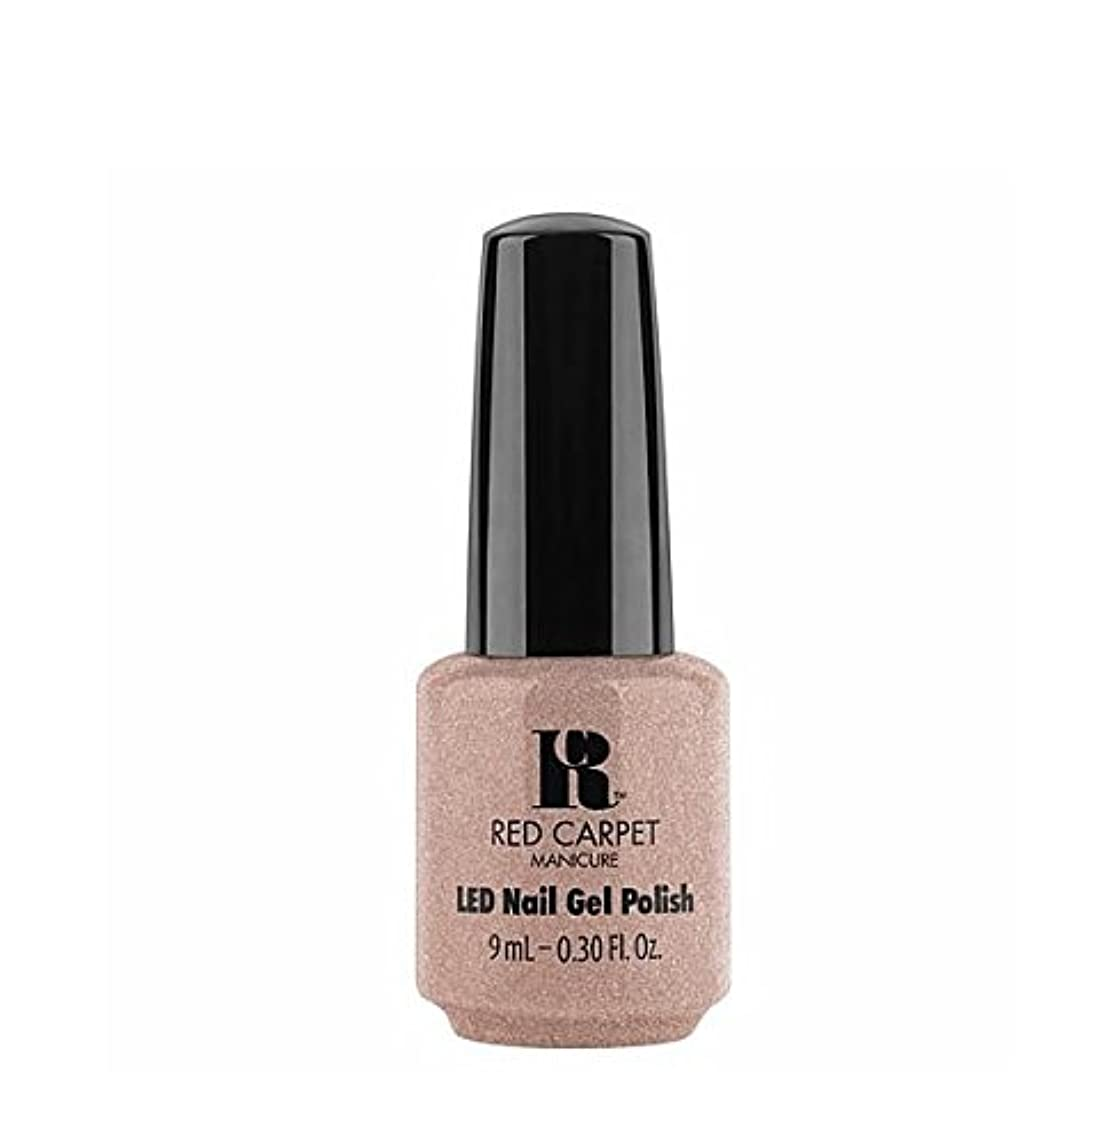 Red Carpet Manicure LED Gel Polish - Suited For Me - 9 ml/0.30 oz